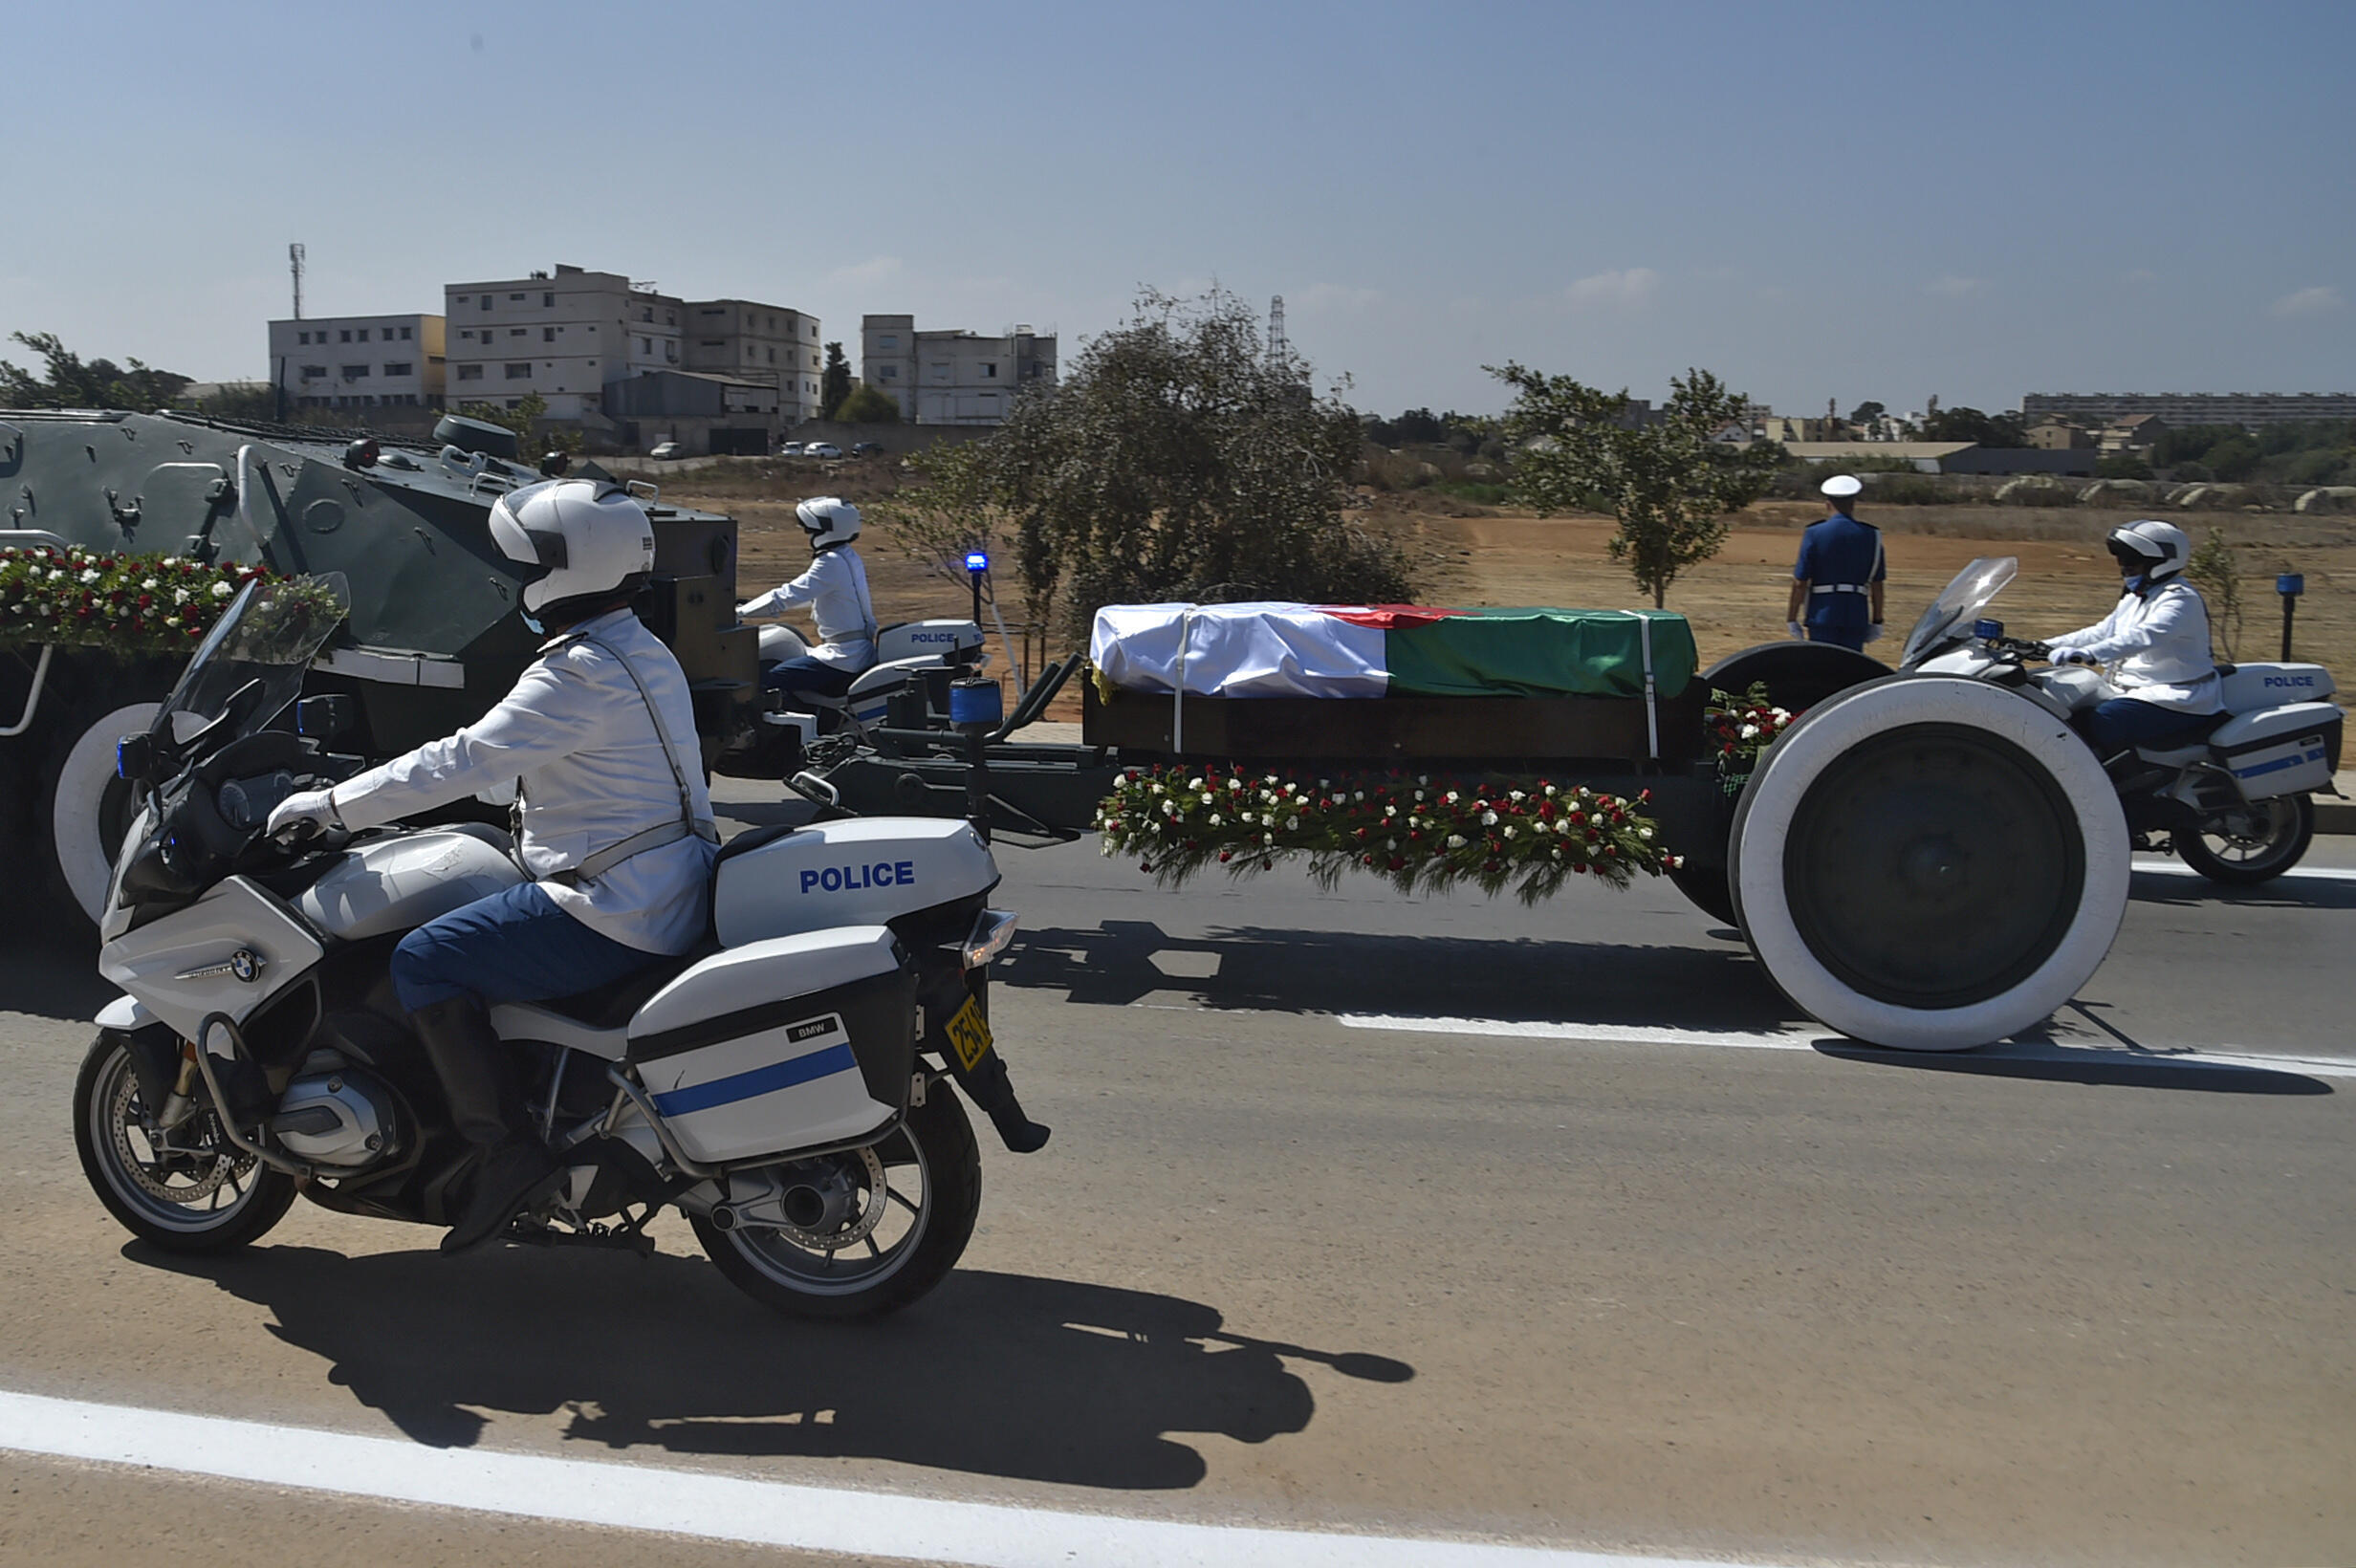 Algerian security forces escort the coffin of former president Abdelaziz Bouteflika to El-Alia cemetery in the capital Algiers on September 19, 2021